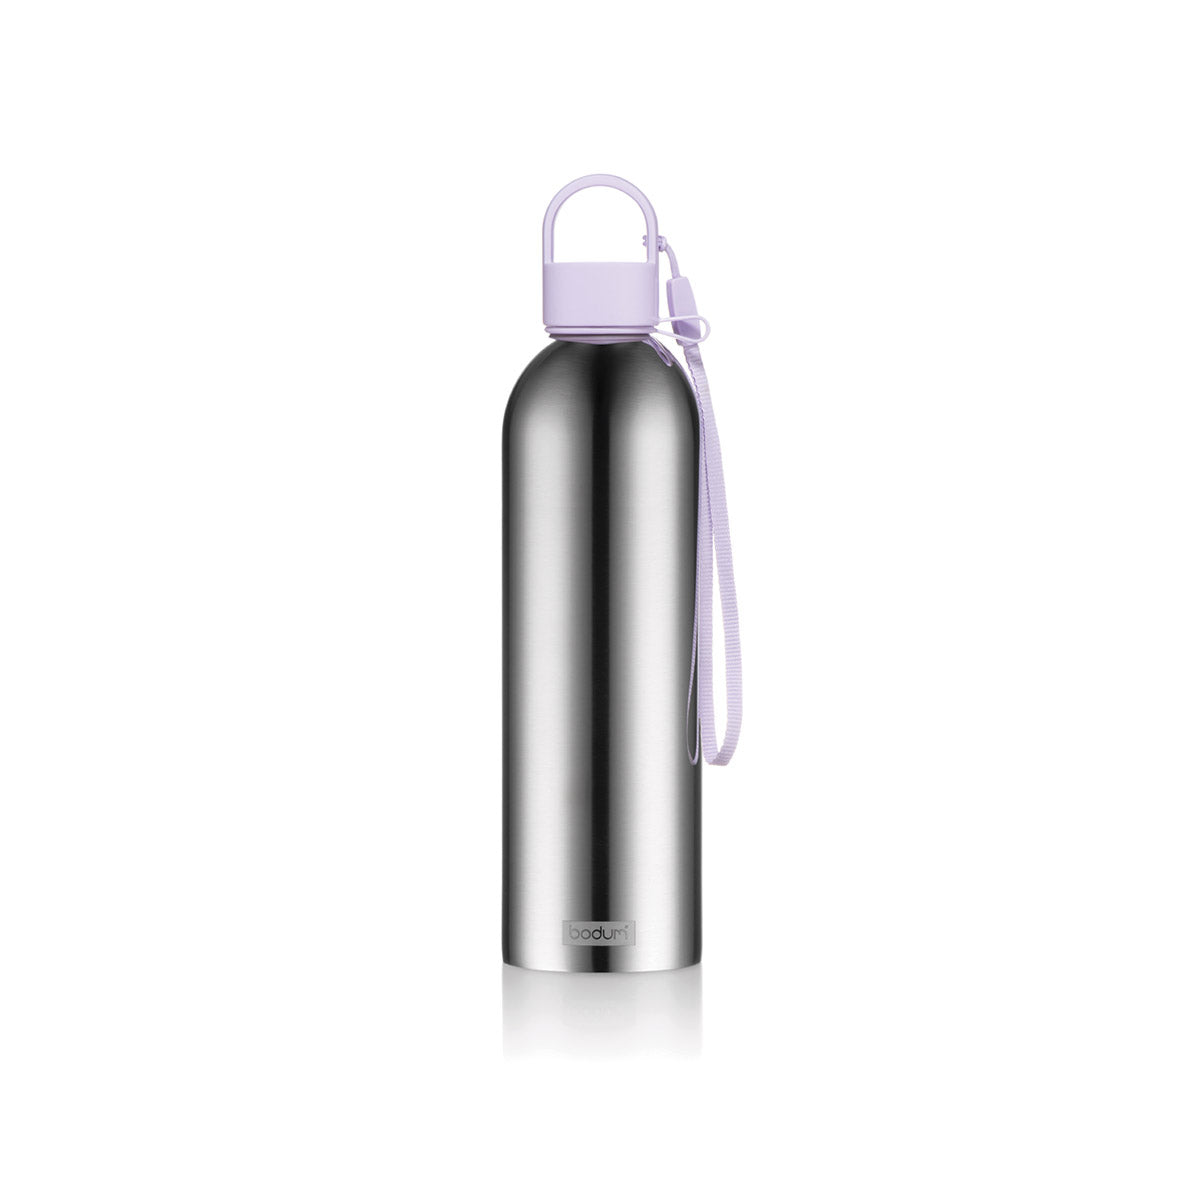 NEW Bodum Melior Stainless Steel Water Bottle 0.5L - Verbena Purple